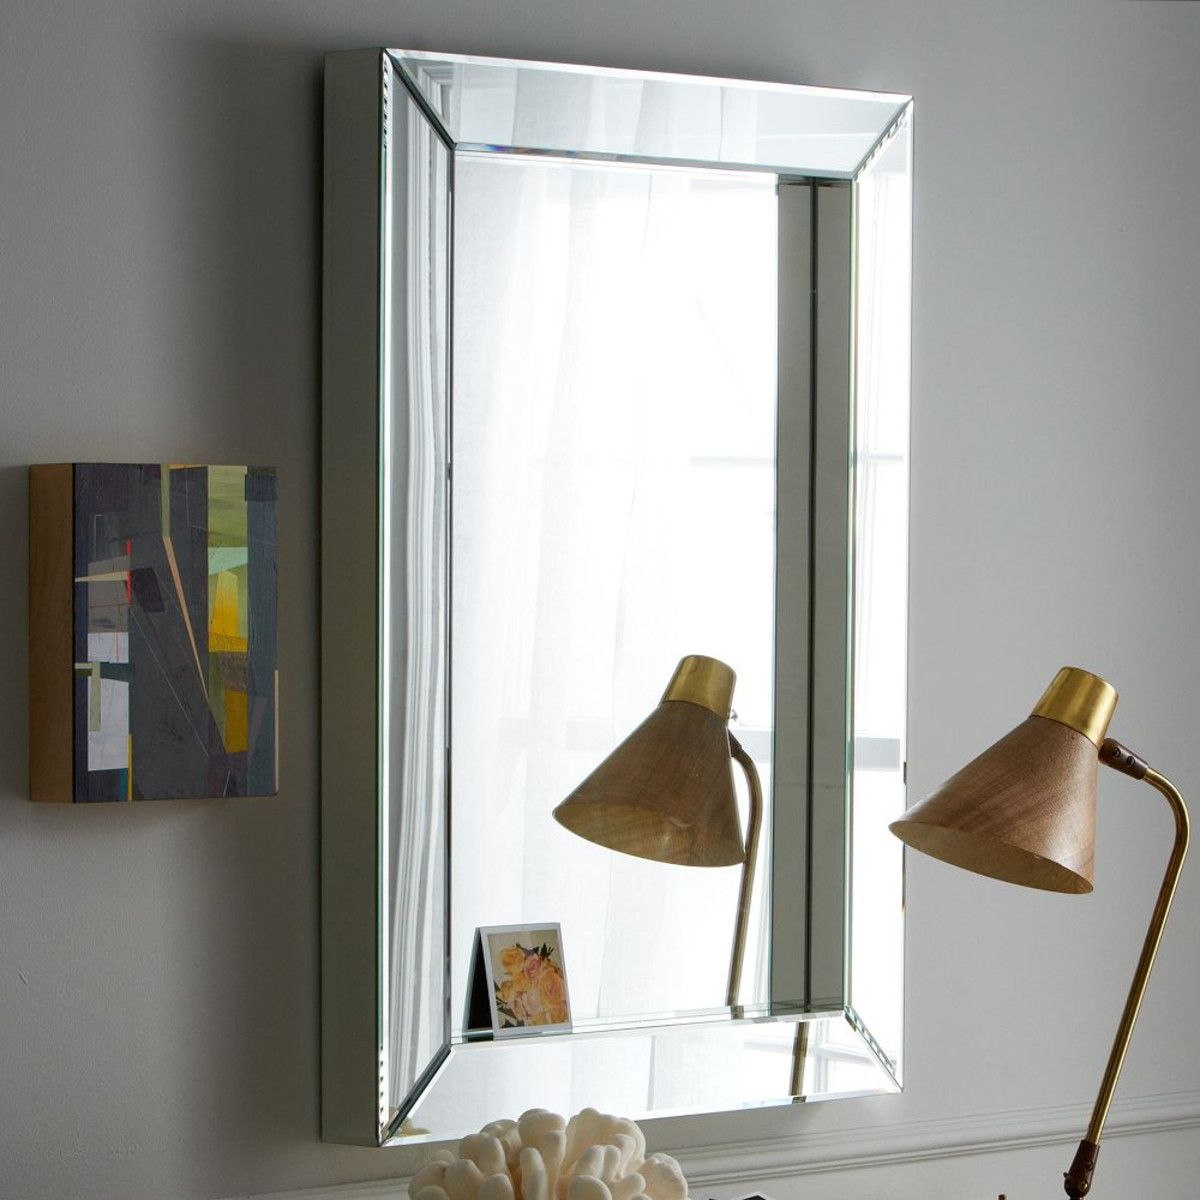 Parsons wall mirror mirrored for the home pinterest mirror parsons wall mirror mirrored amipublicfo Image collections